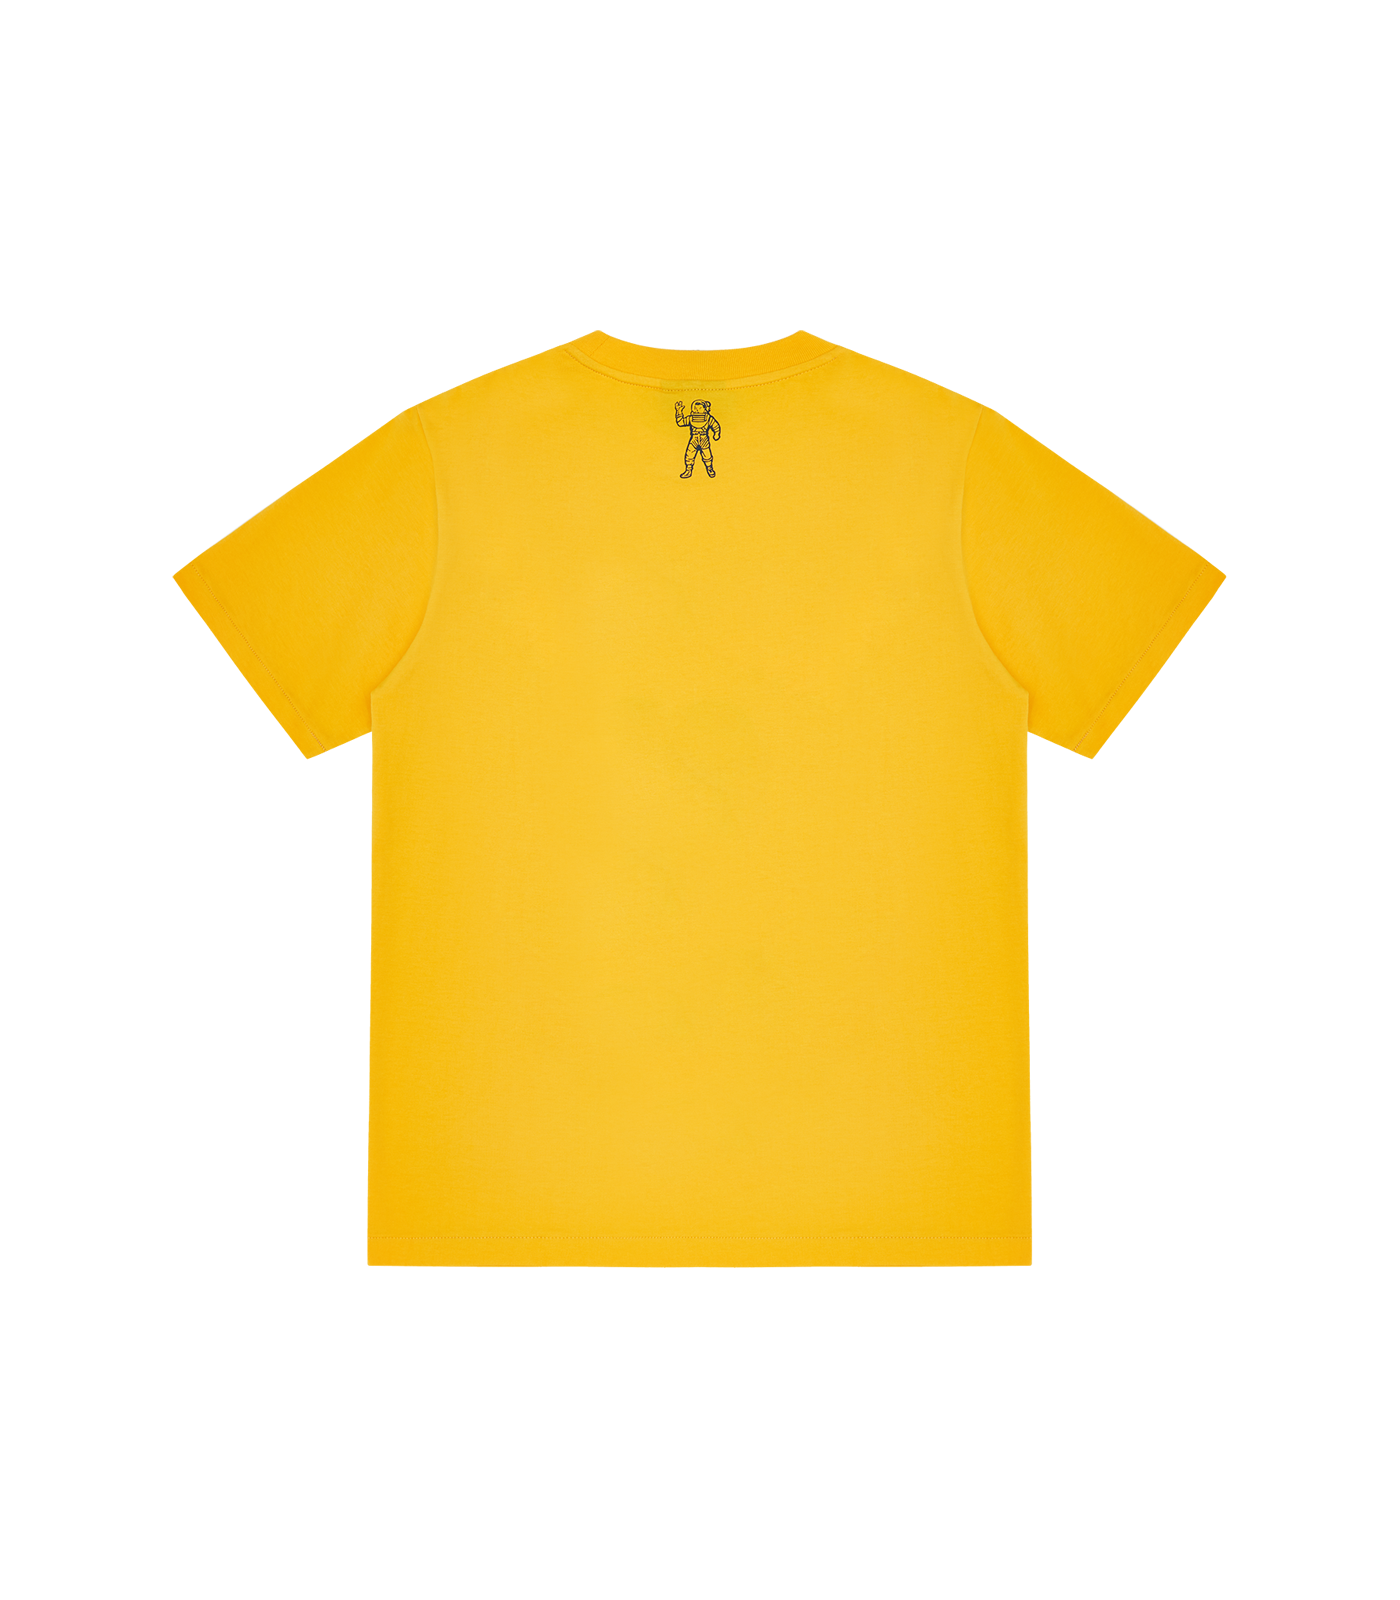 HEART LOGO T-SHIRT - YELLOW